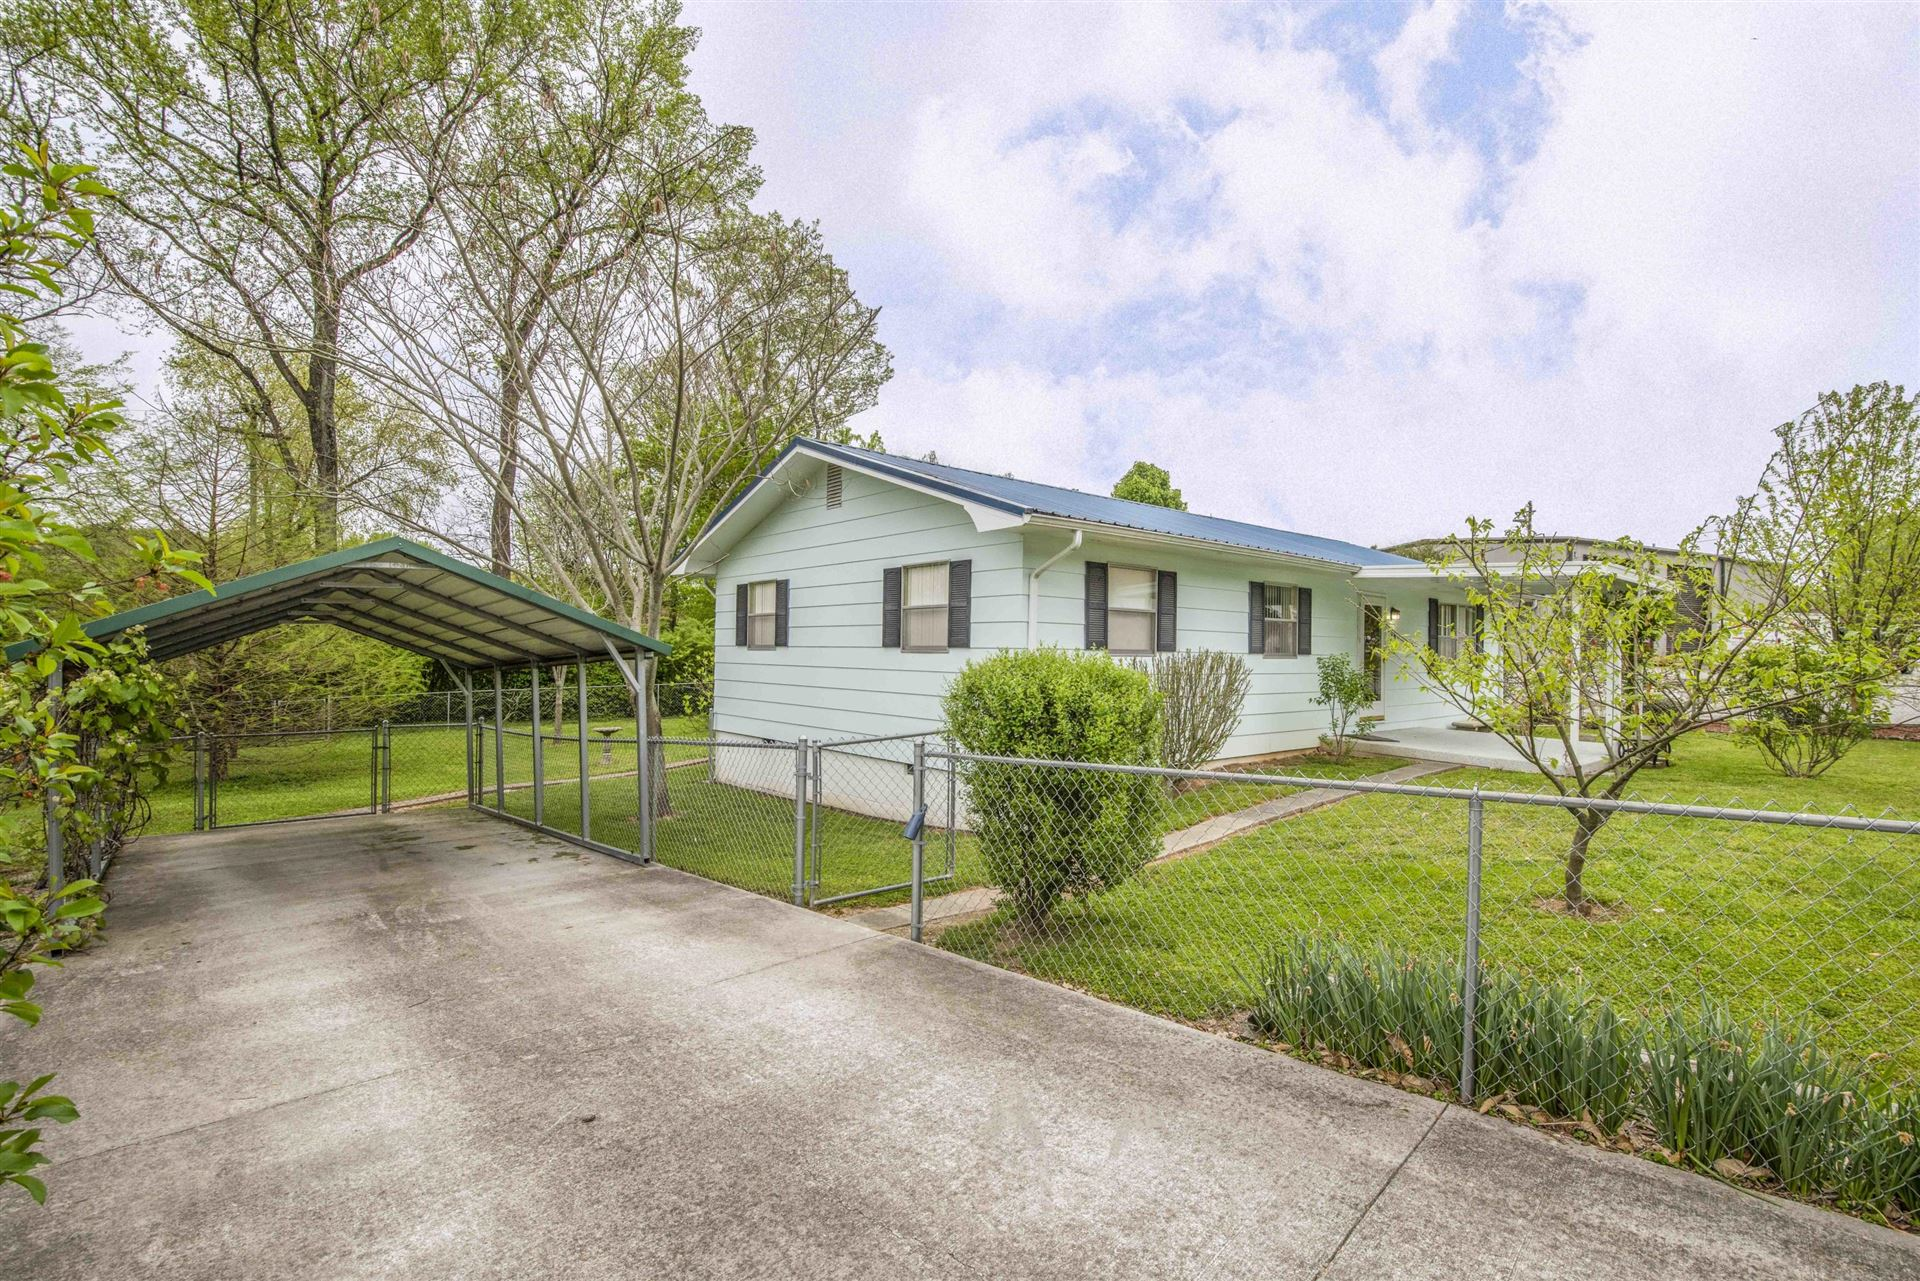 Photo of 306 Blockhouse Valley Rd, Clinton, TN 37716 (MLS # 1149549)